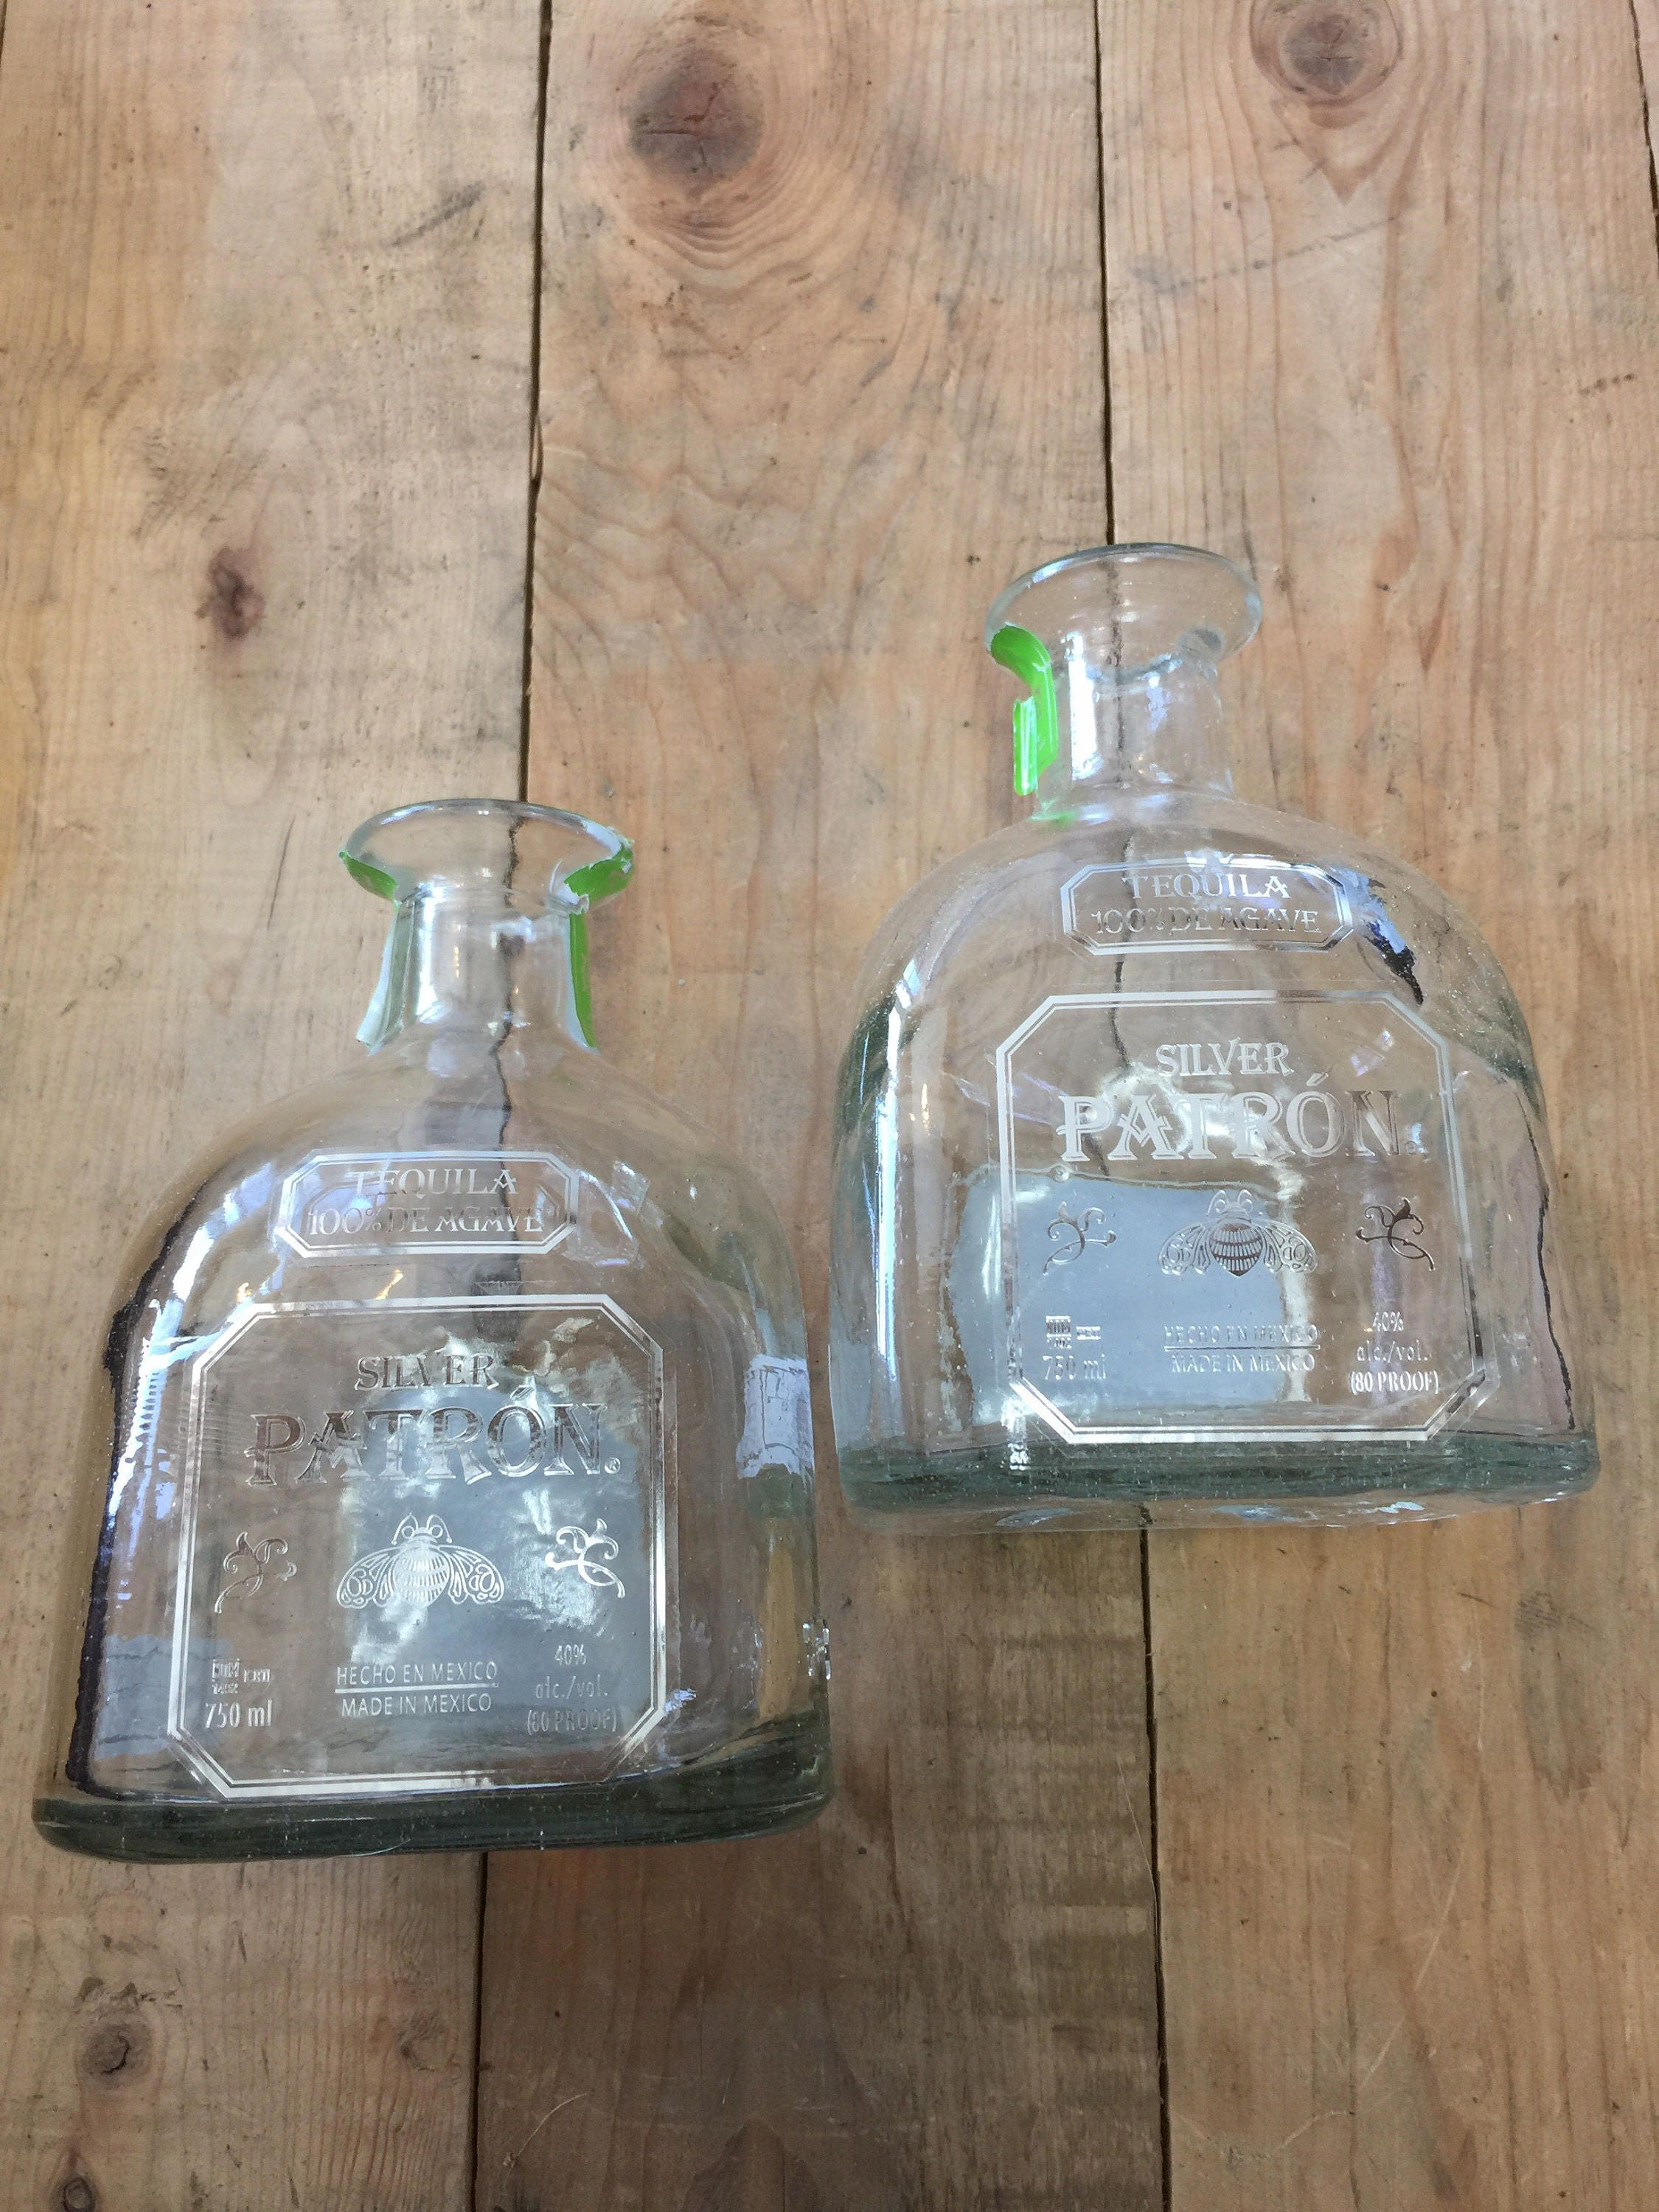 Patron Silver 750ml Tequila Glass Bottle Empty Square Rustic